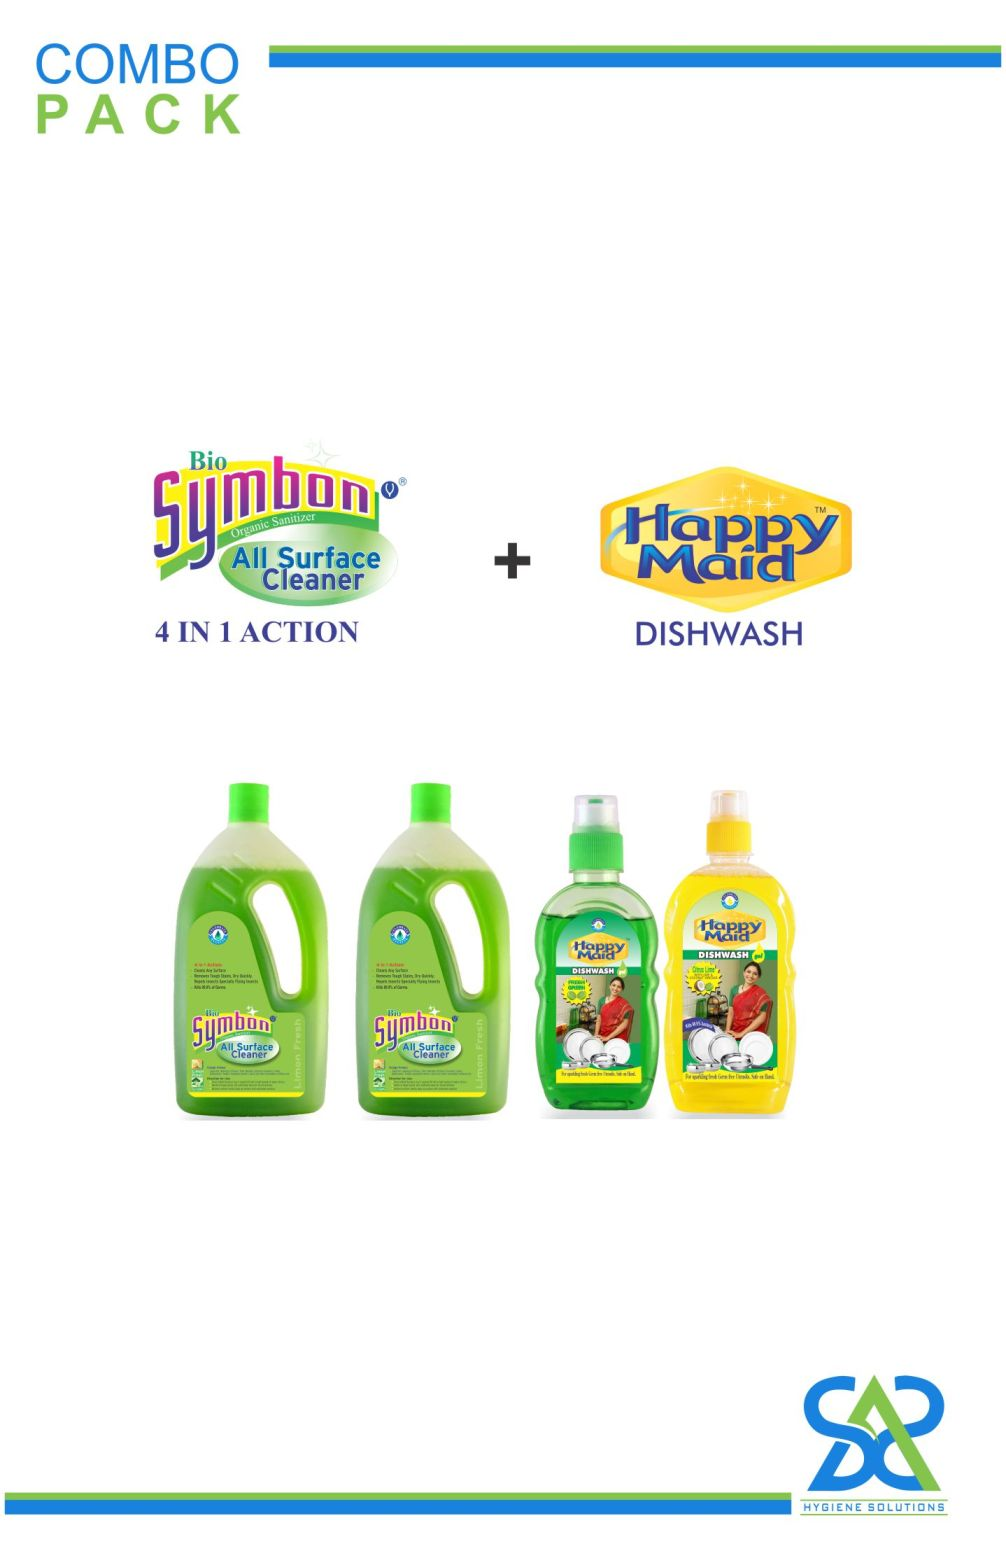 COMBO PACK  of Bio-Symbon Disinfectant All Surface Cleaner + Happy Maid Dish Wash